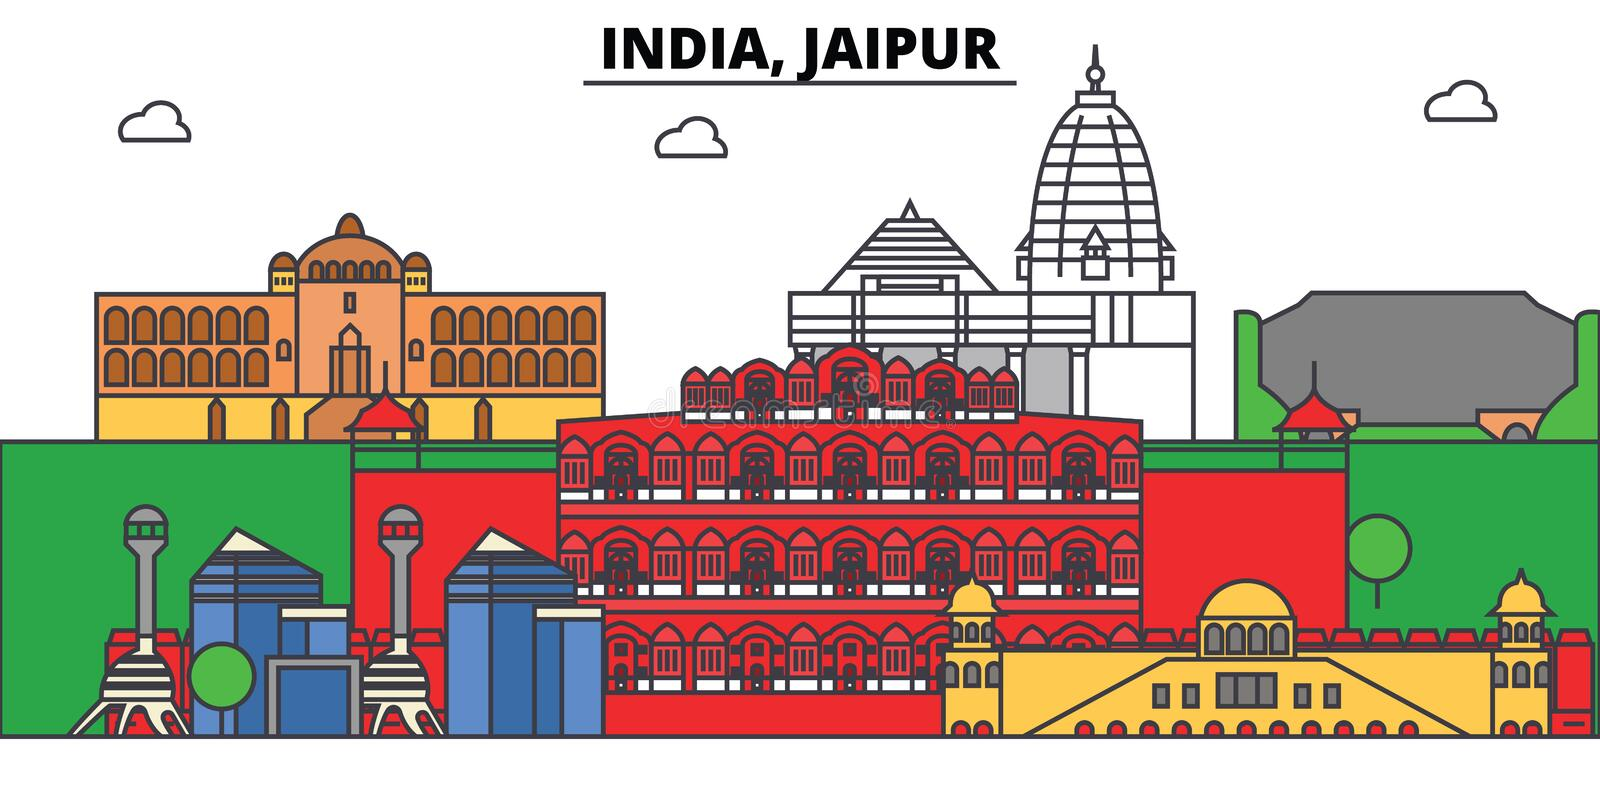 India, Jaipur, Hinduism. City skyline, architecture, buildings, streets, silhouette, landscape, panorama, landmarks. India, Jaipur, Hinduism. City skyline vector illustration